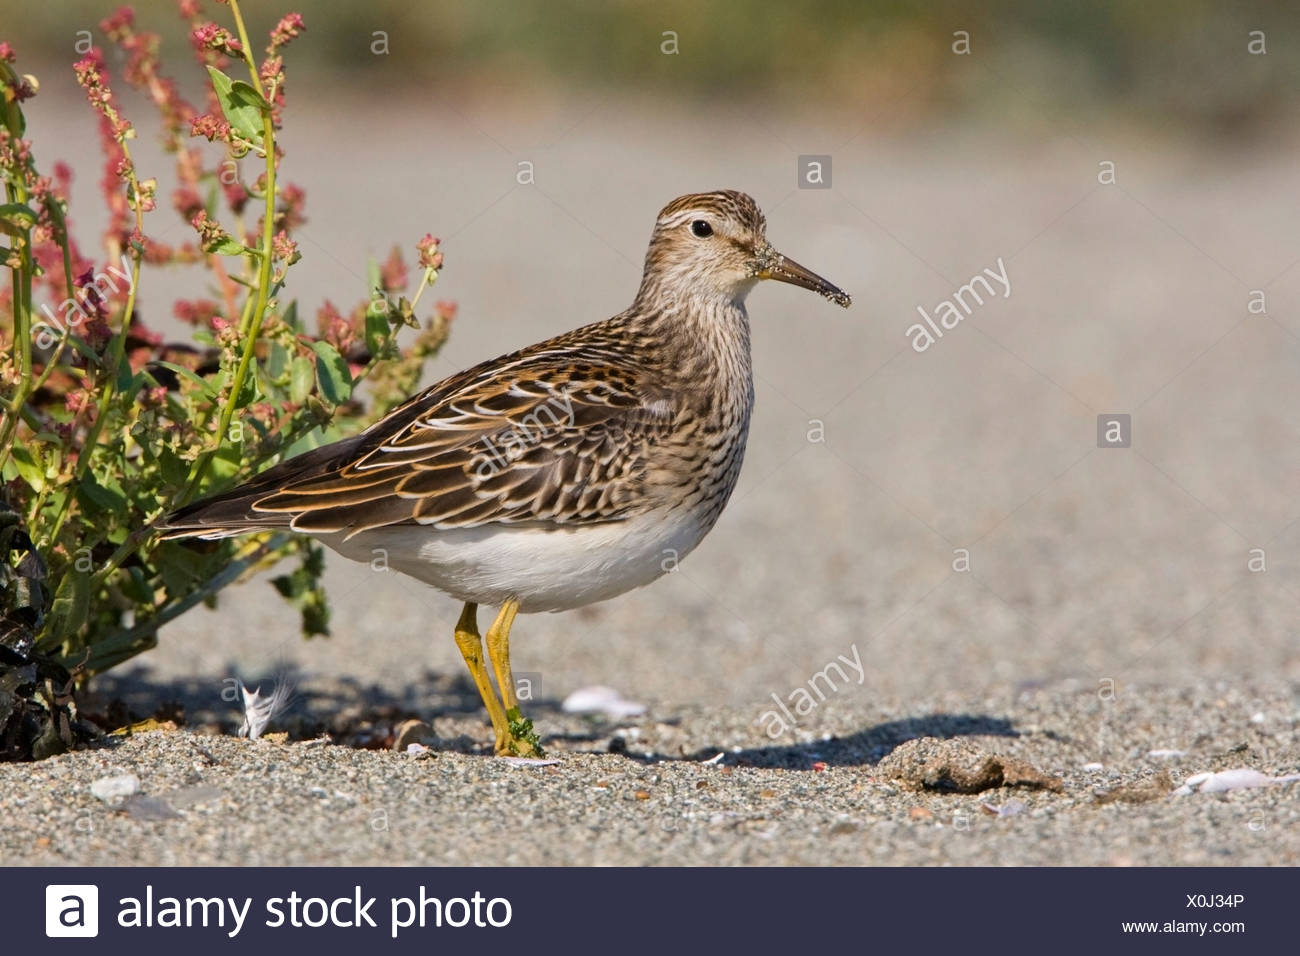 A Pectoral sandpiper (Calidris melanotos) feeds along the shoreline in Victoria, Vancouver Island, British Columbia, Canada - Stock Image